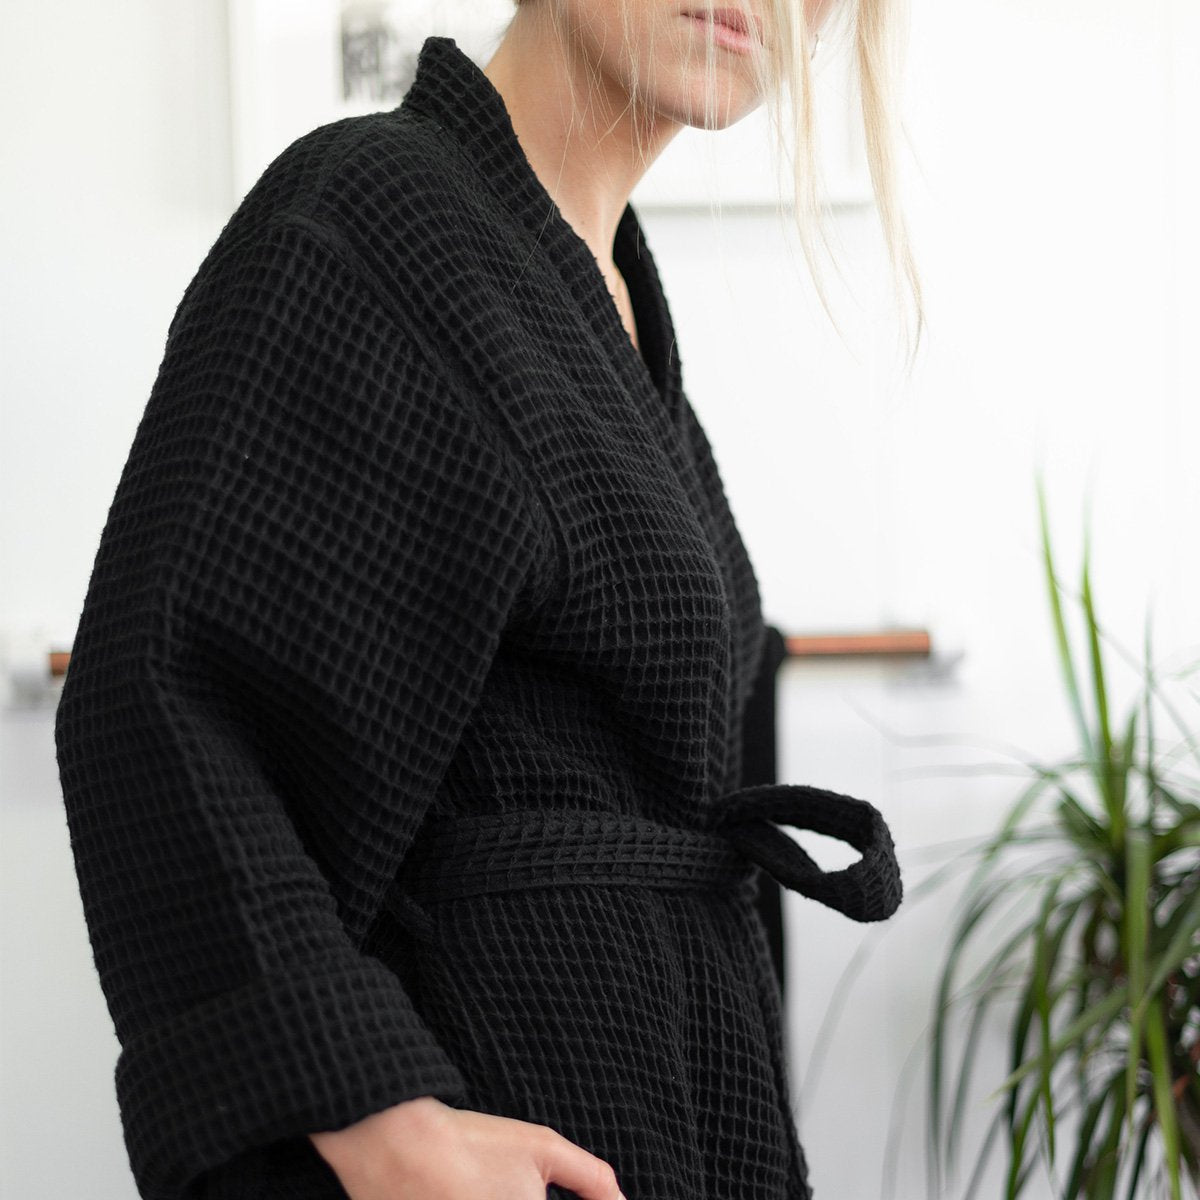 Guild Robe - Black - Small